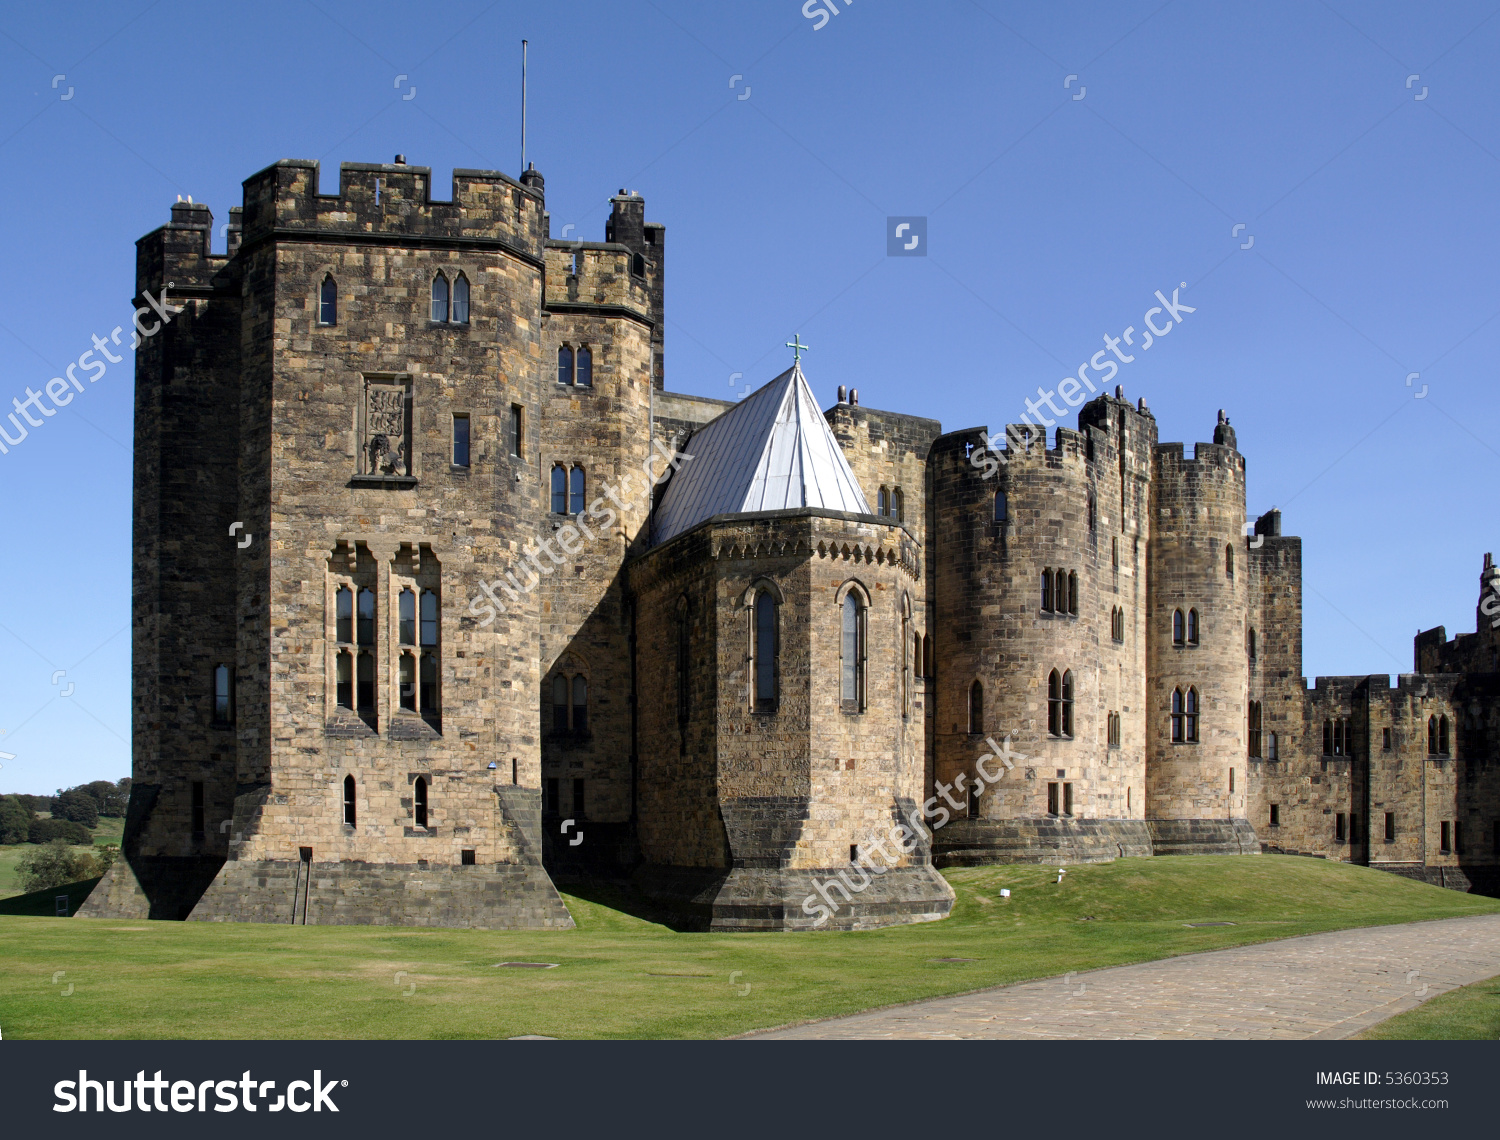 Alnwick Castle In Northumberland, Where 2 Harry Potter Films Were.